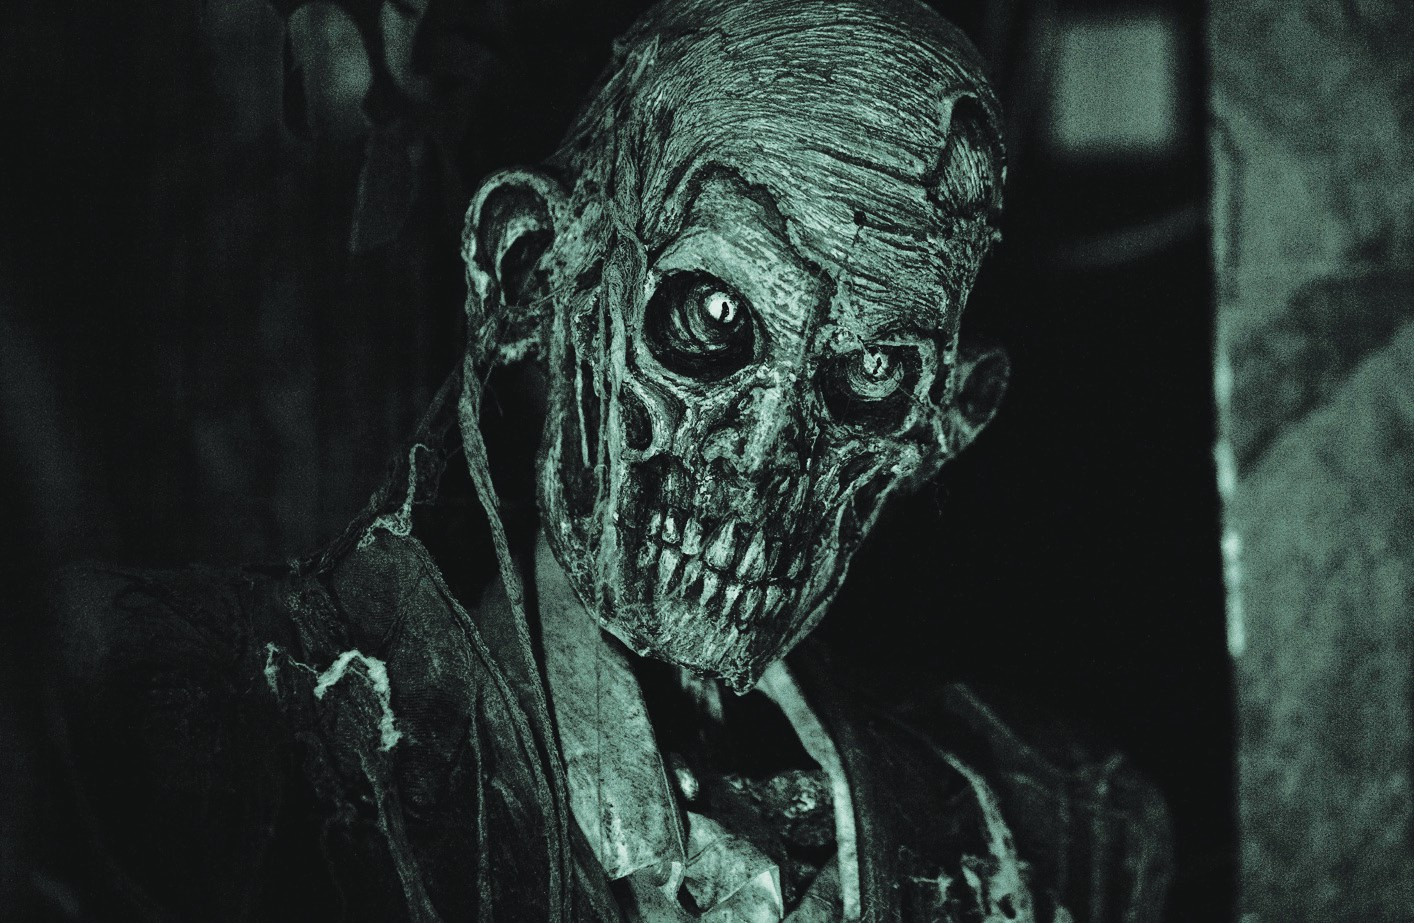 FRIGHTENING FUNDRAISERu2014The Reign Of Terror Haunted House At Janss  Marketplace Is Opening For A